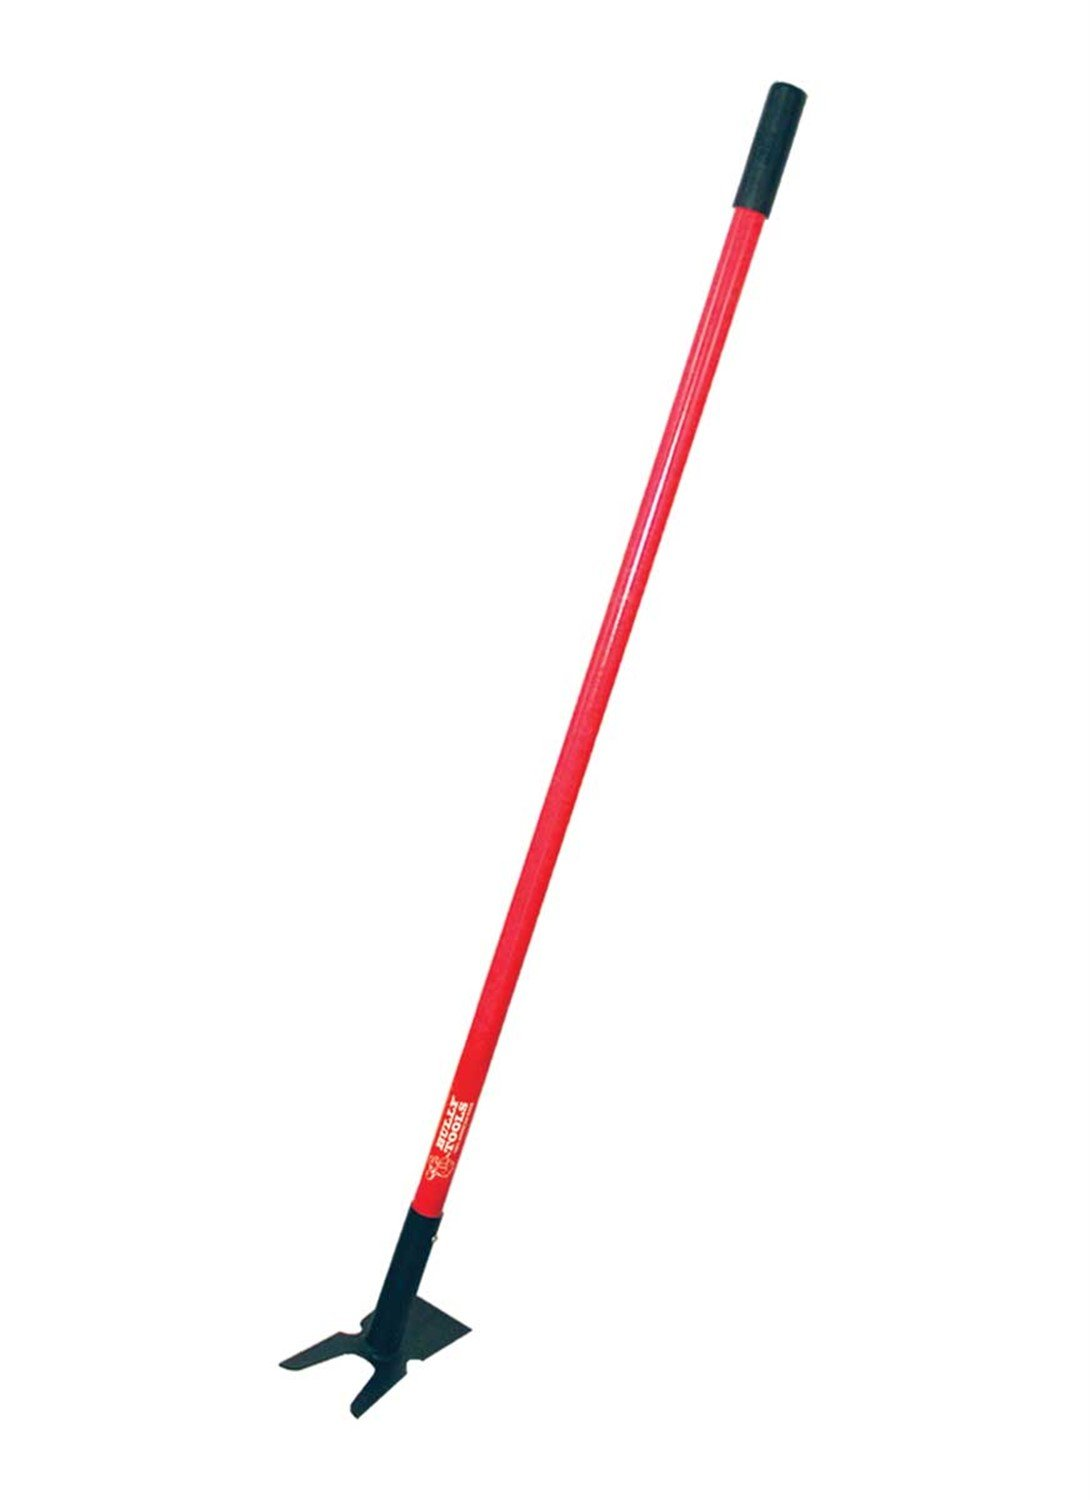 Bully Tools 92357 12-Gauge 2-Prong Weeding Hoe with Fiberglass Handle